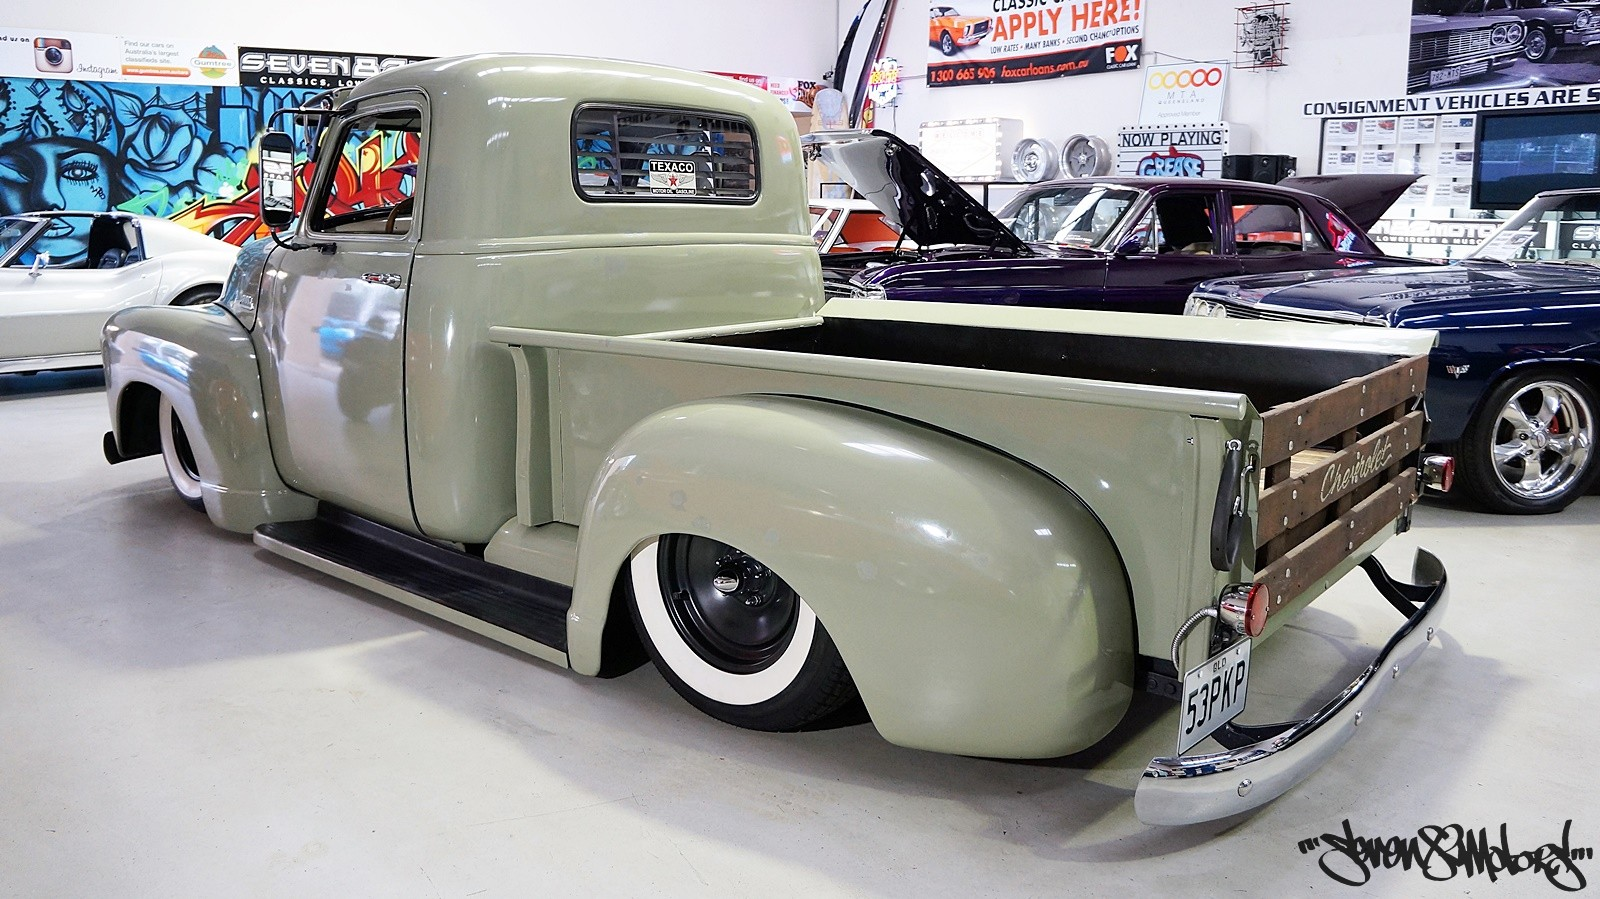 SOLD! 1953 Chevy 3100 Pick Up - SEVEN82MOTORS